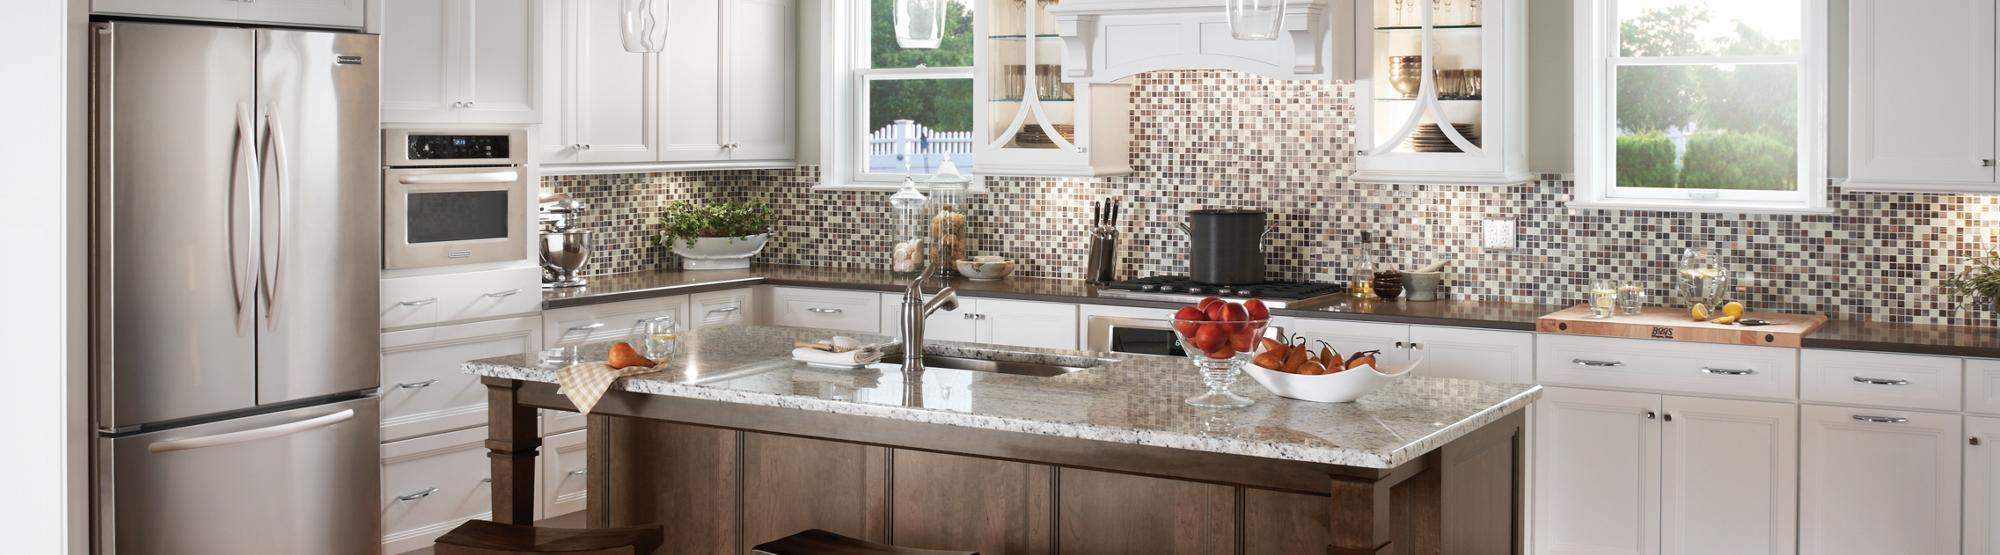 Monroe Maple White Icing Classic; Island Shown in Maple Eagle Rock Sable Glaze and Highlight